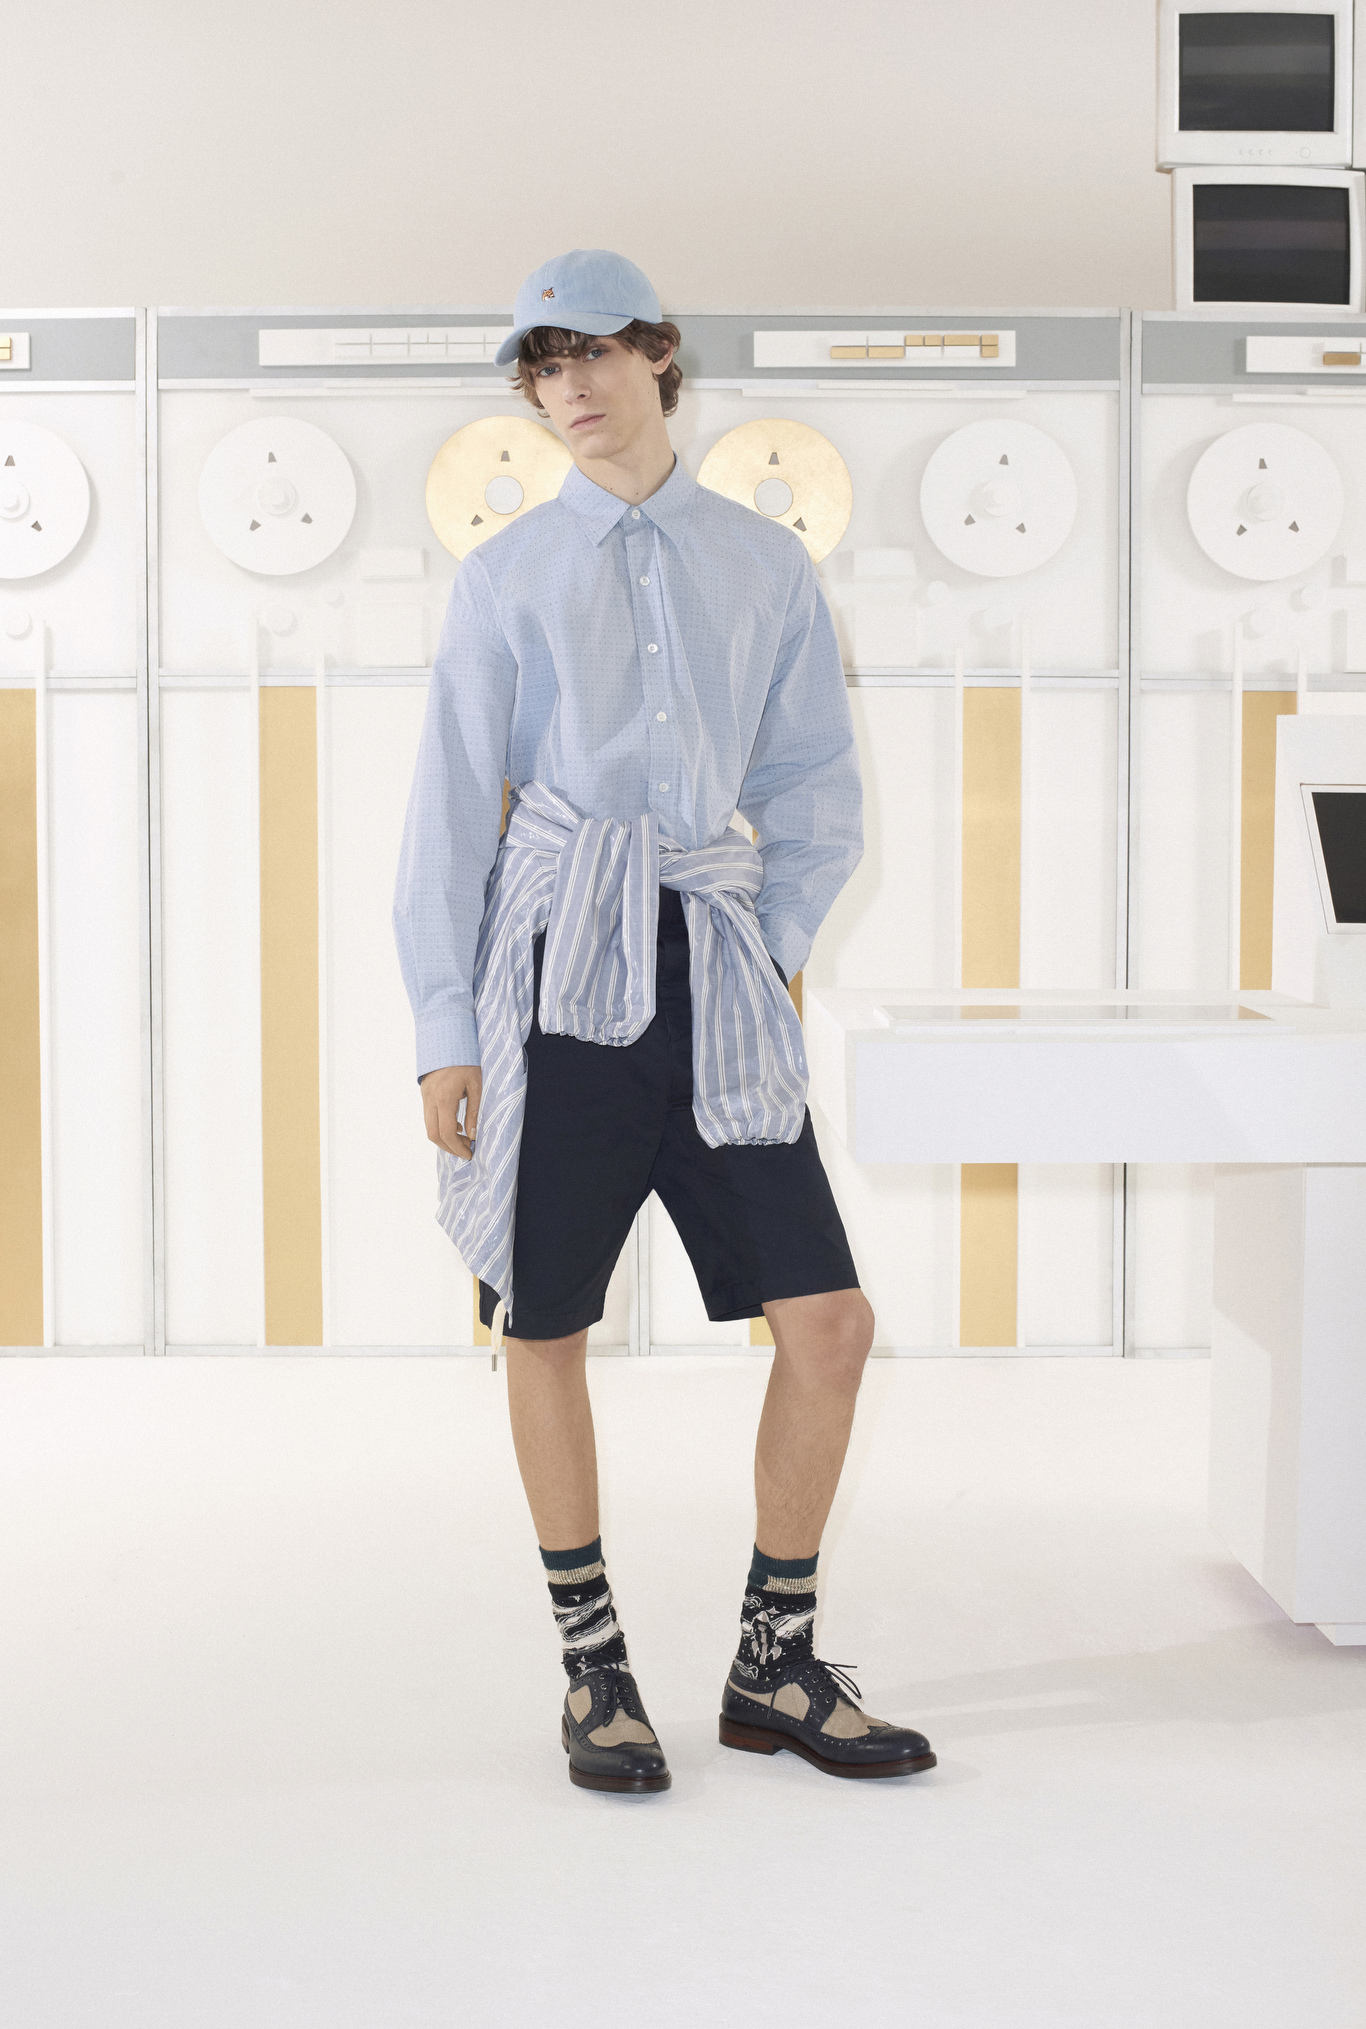 Maison Kitsuné Men's Fall 2018